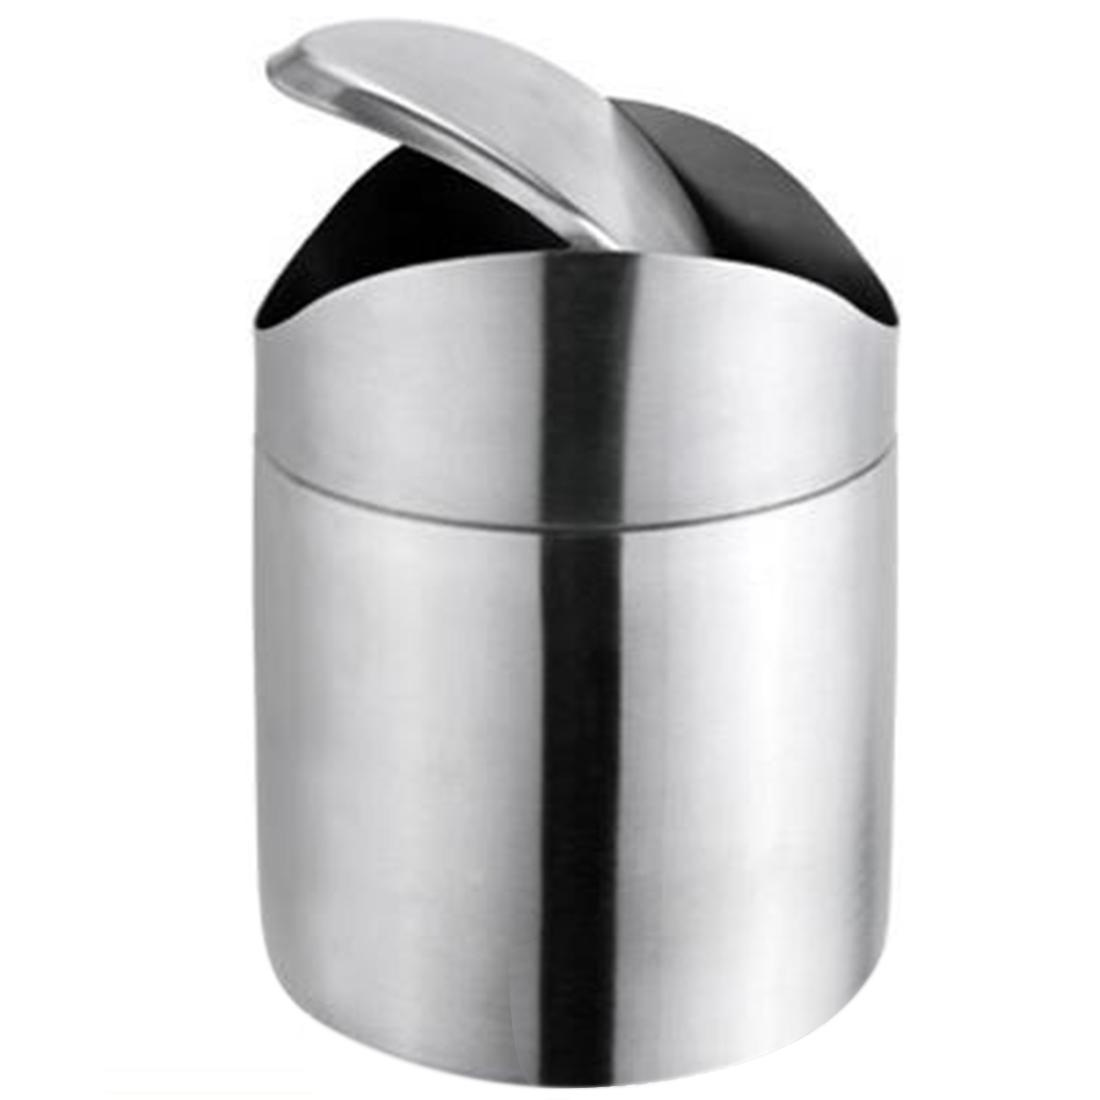 Stainless Steel Swing Lid Mini Trash Can Bin Garbage Box Desktop Storage Barrels Rubbish Silver